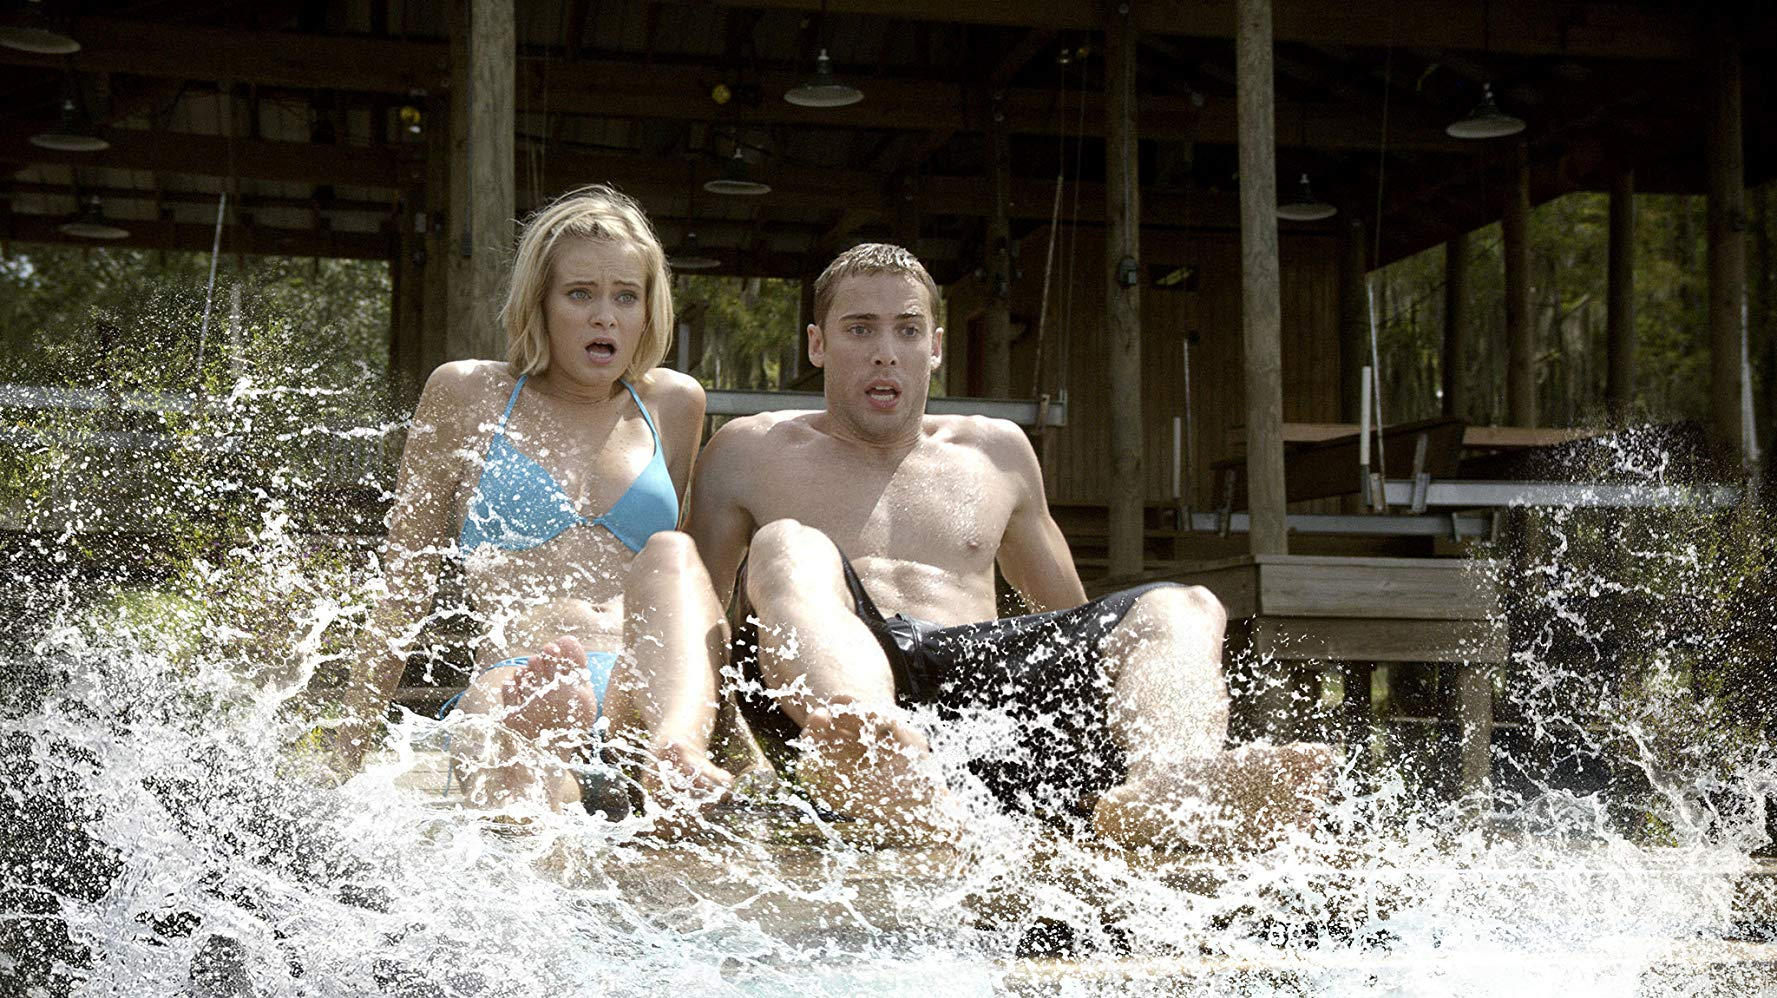 Sara Paxton and Dustin Milligan in Shark Night 3D (2011)